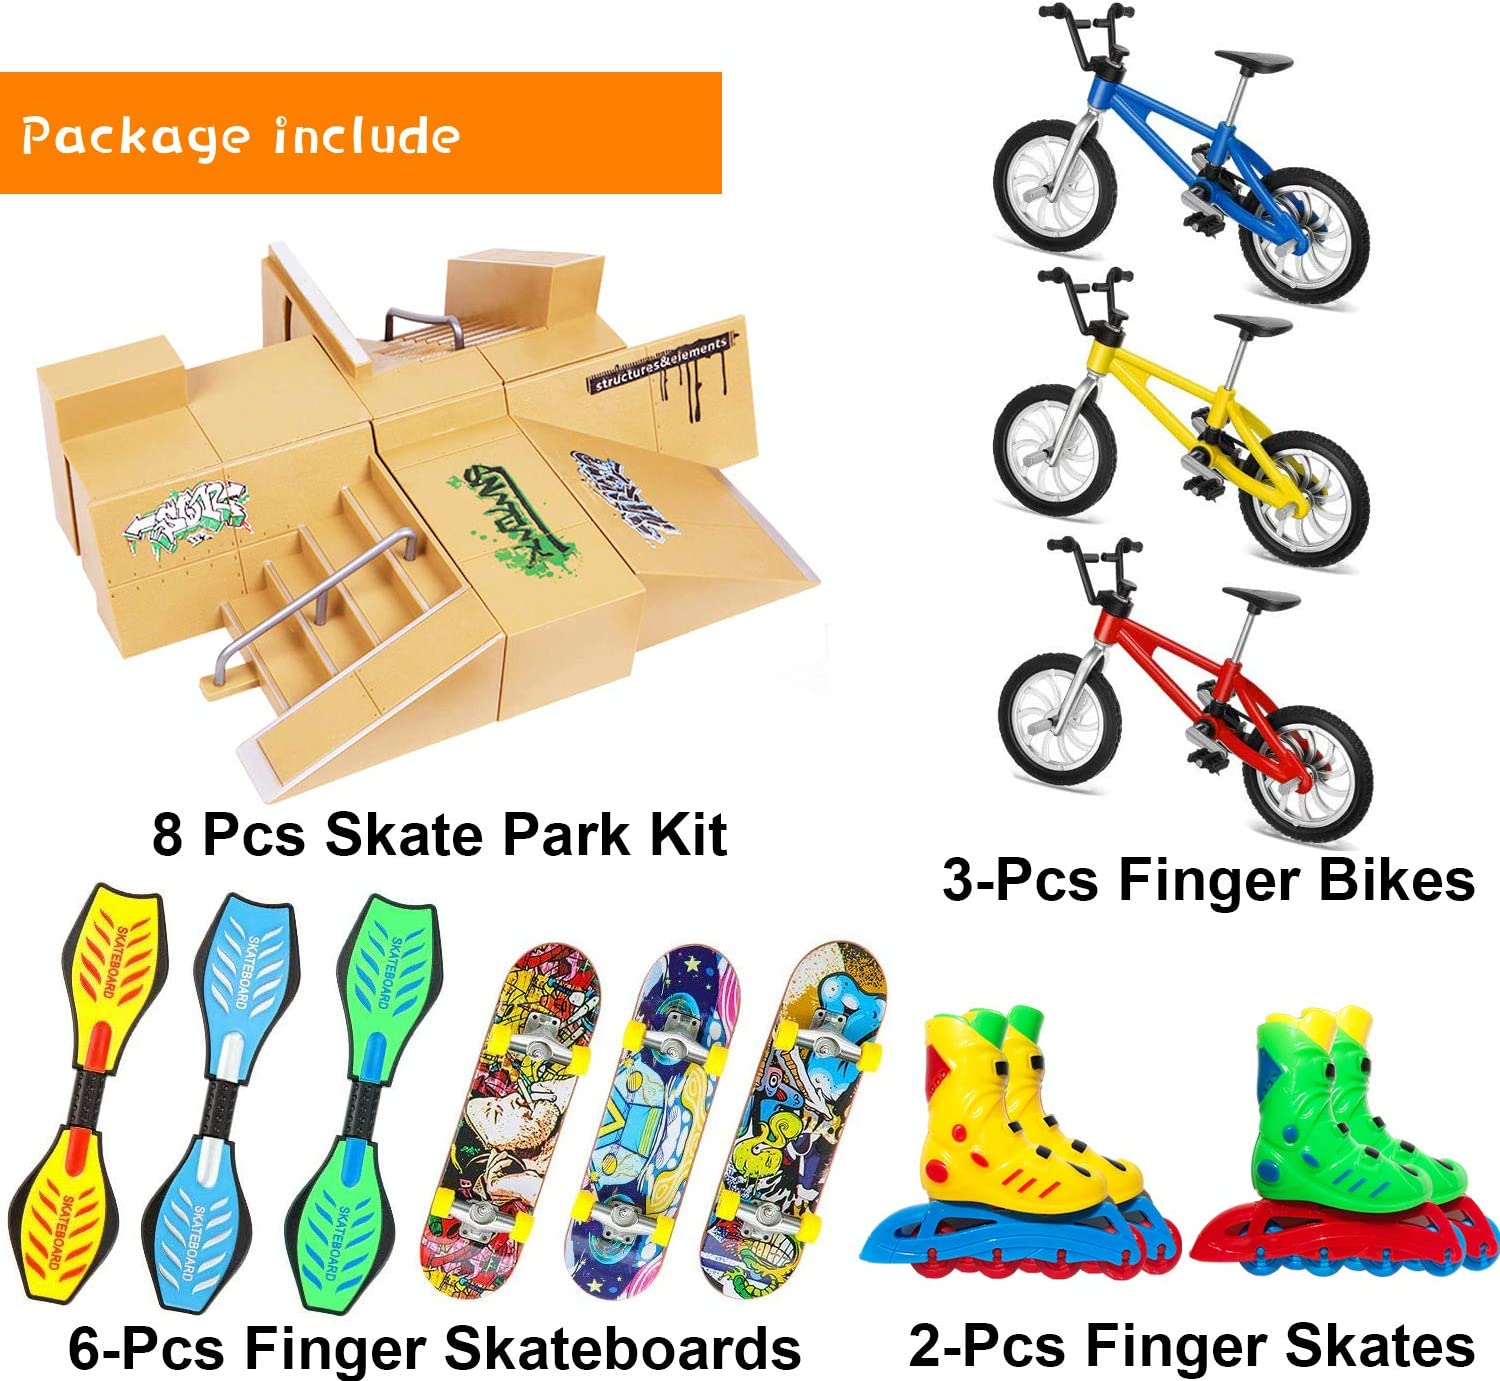 with Interesting Accessories Experience More Gameplay and Happiness for Kids Ramp Parts for Fingerboard Skate Park Ultimate Parks Training Props Aestheticism Skate Park Kit